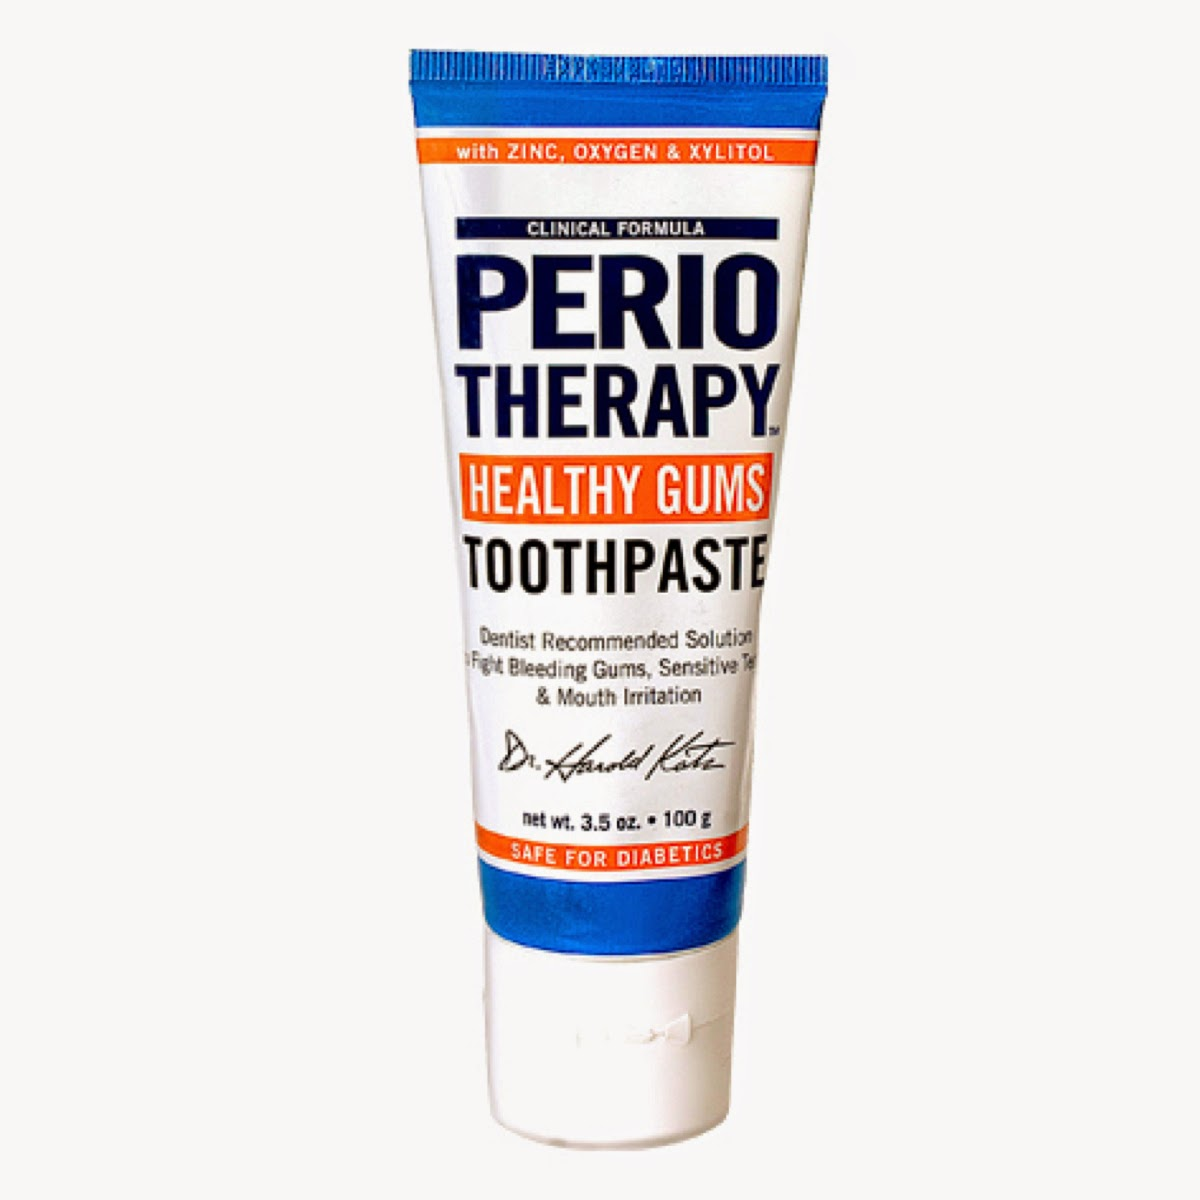 https://www.toothygrinsstore.com/product-p/periotherapytoothpaste01.htm